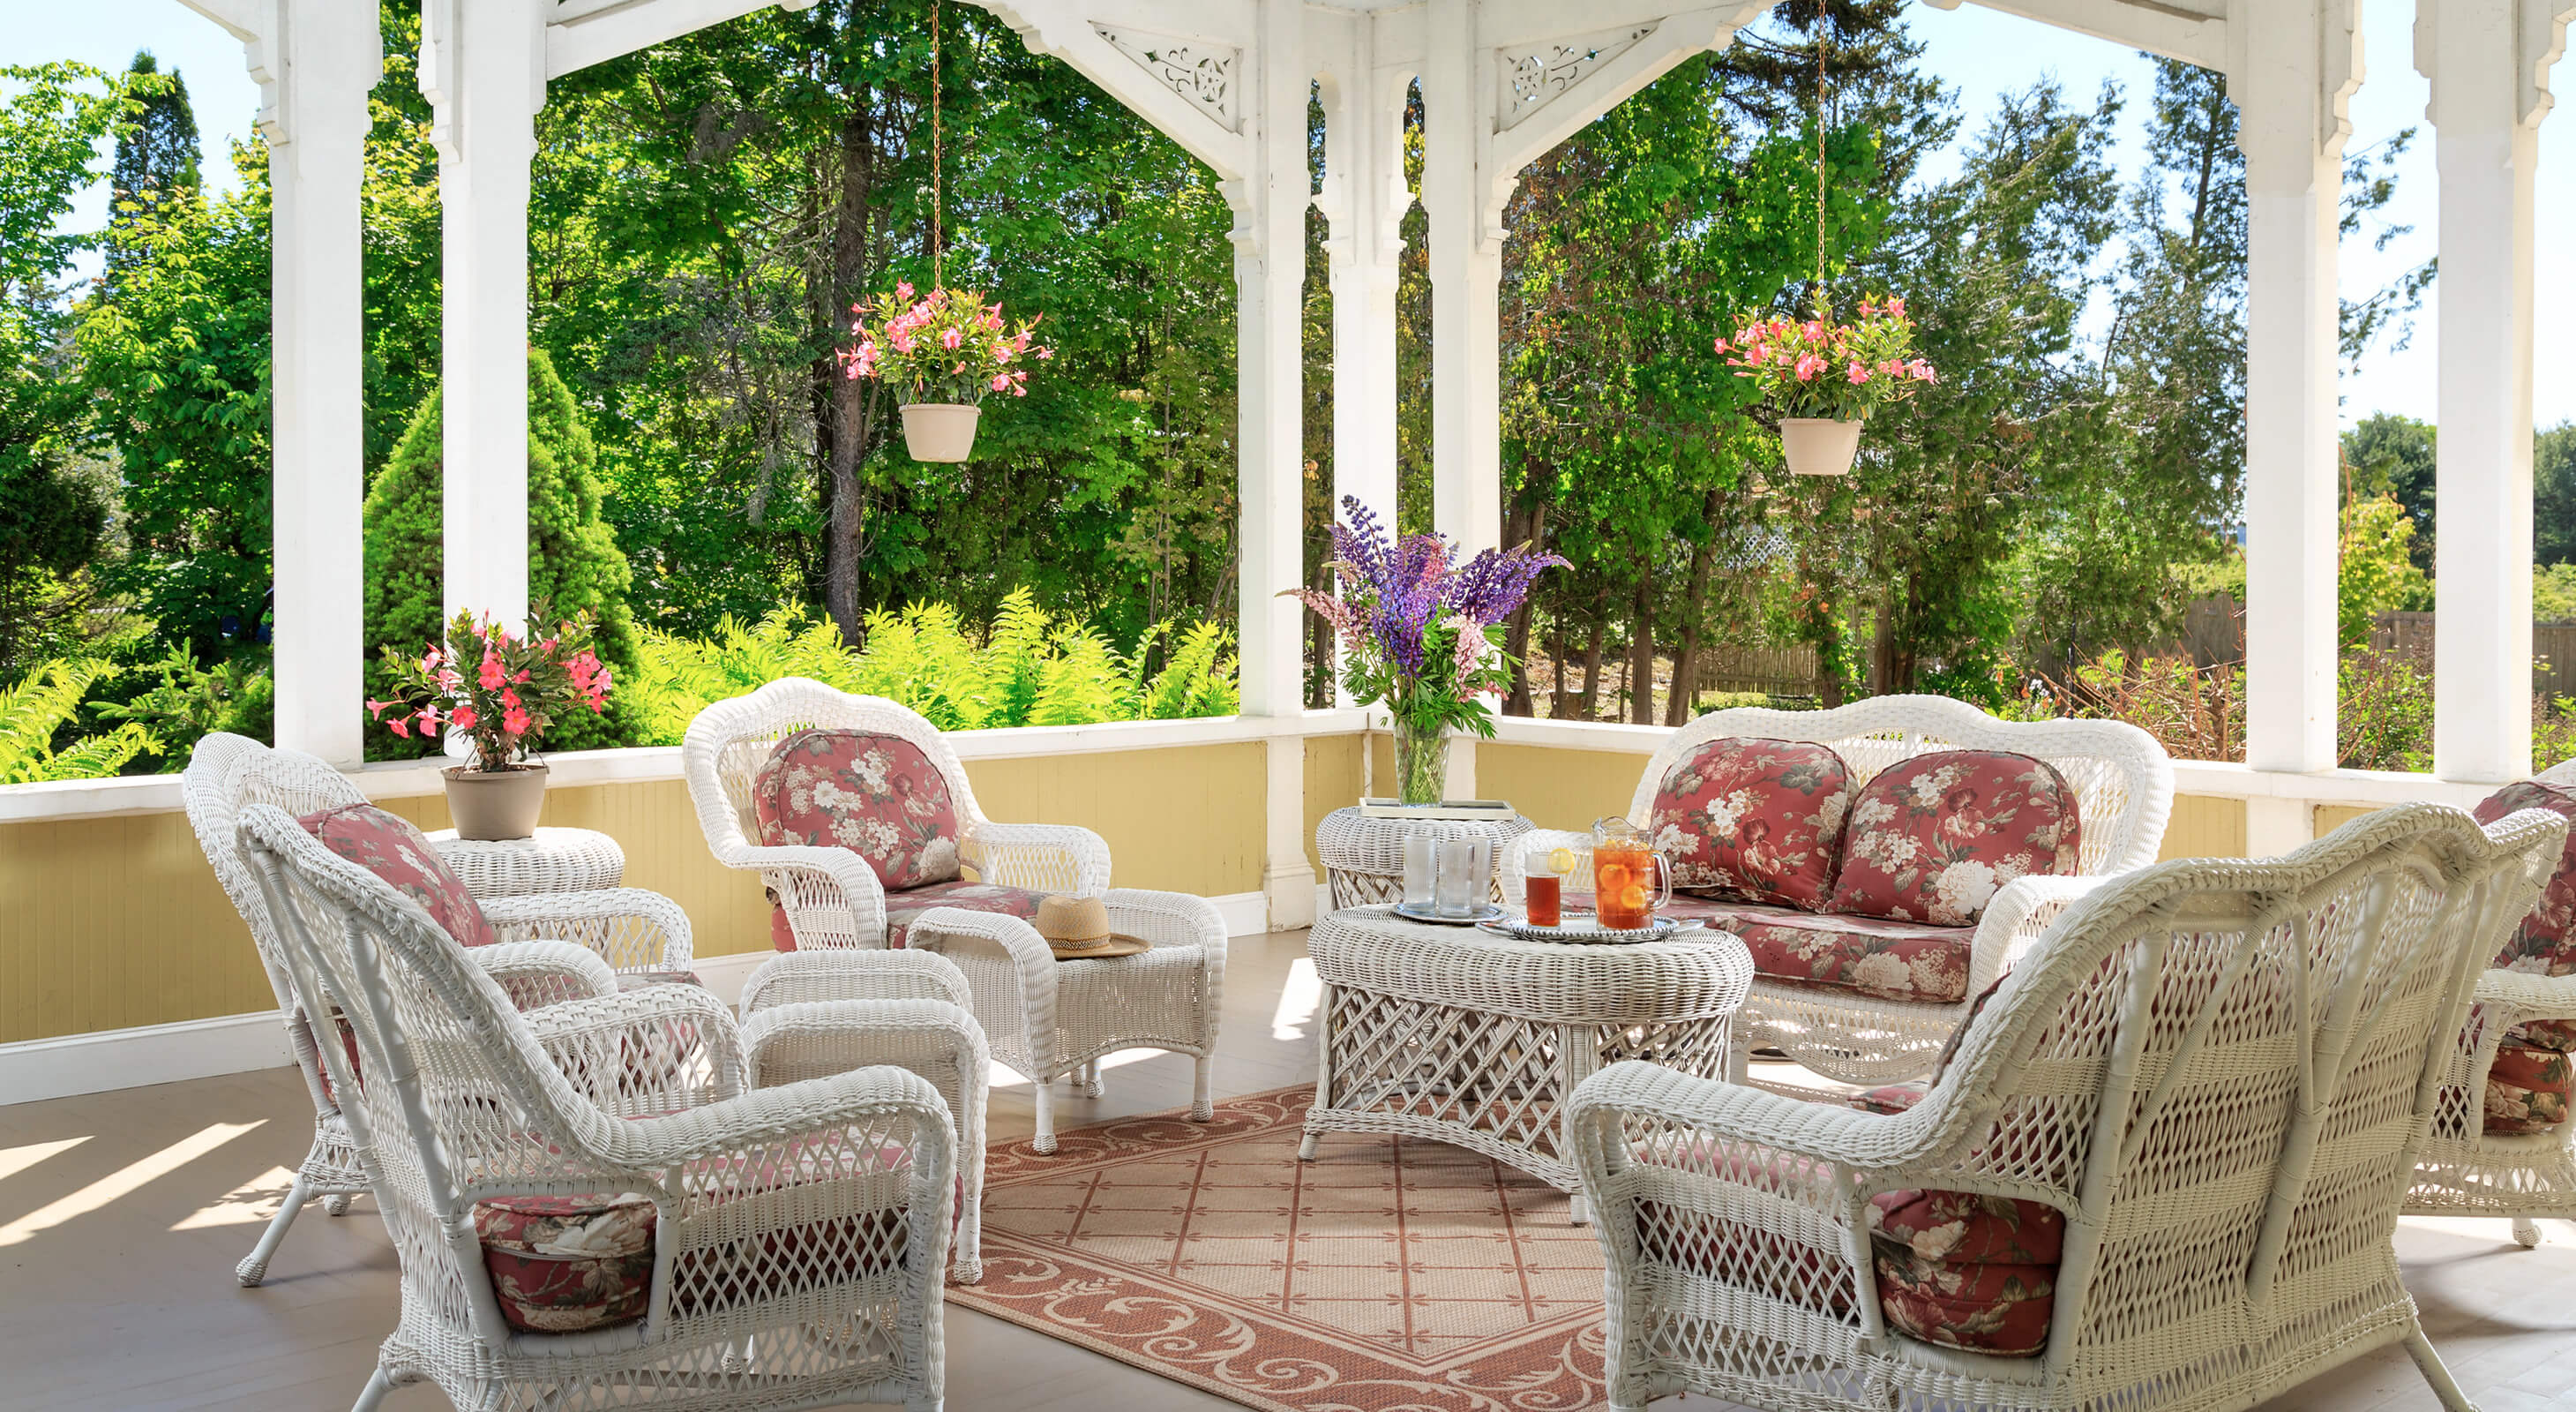 Relaxing large porch with wicker furniture